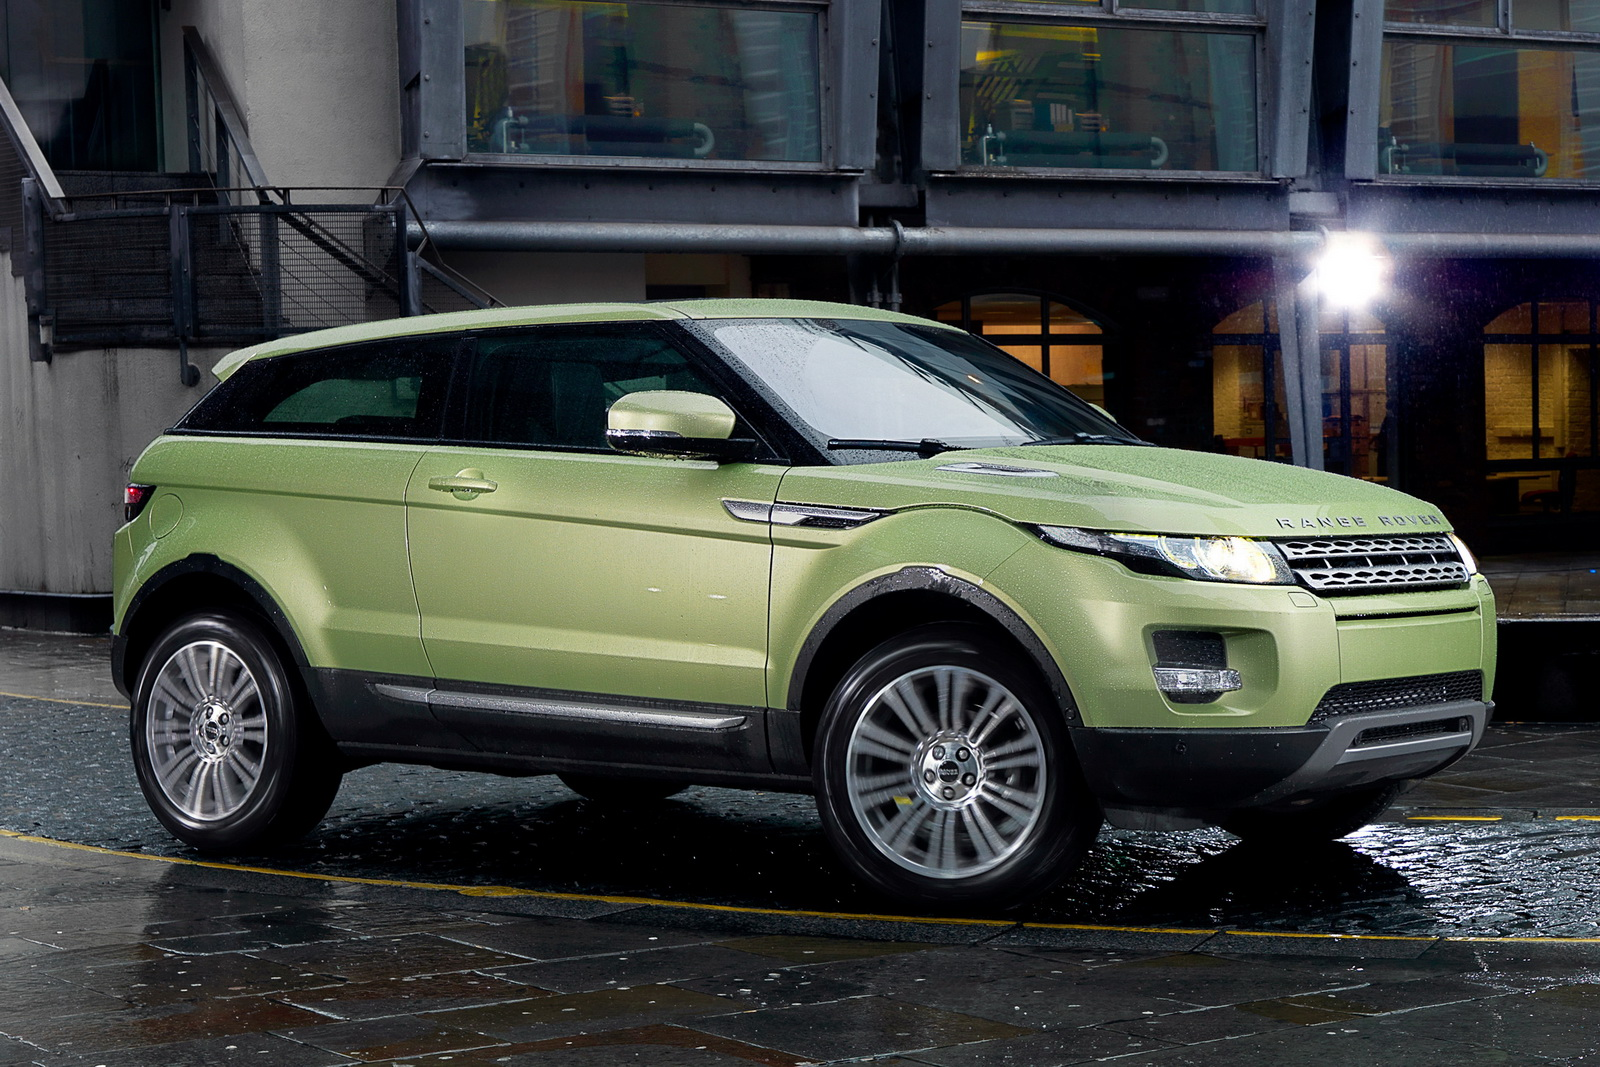 Land Rover Announces U.S. Prices and Fuel Economy Figures  free download image